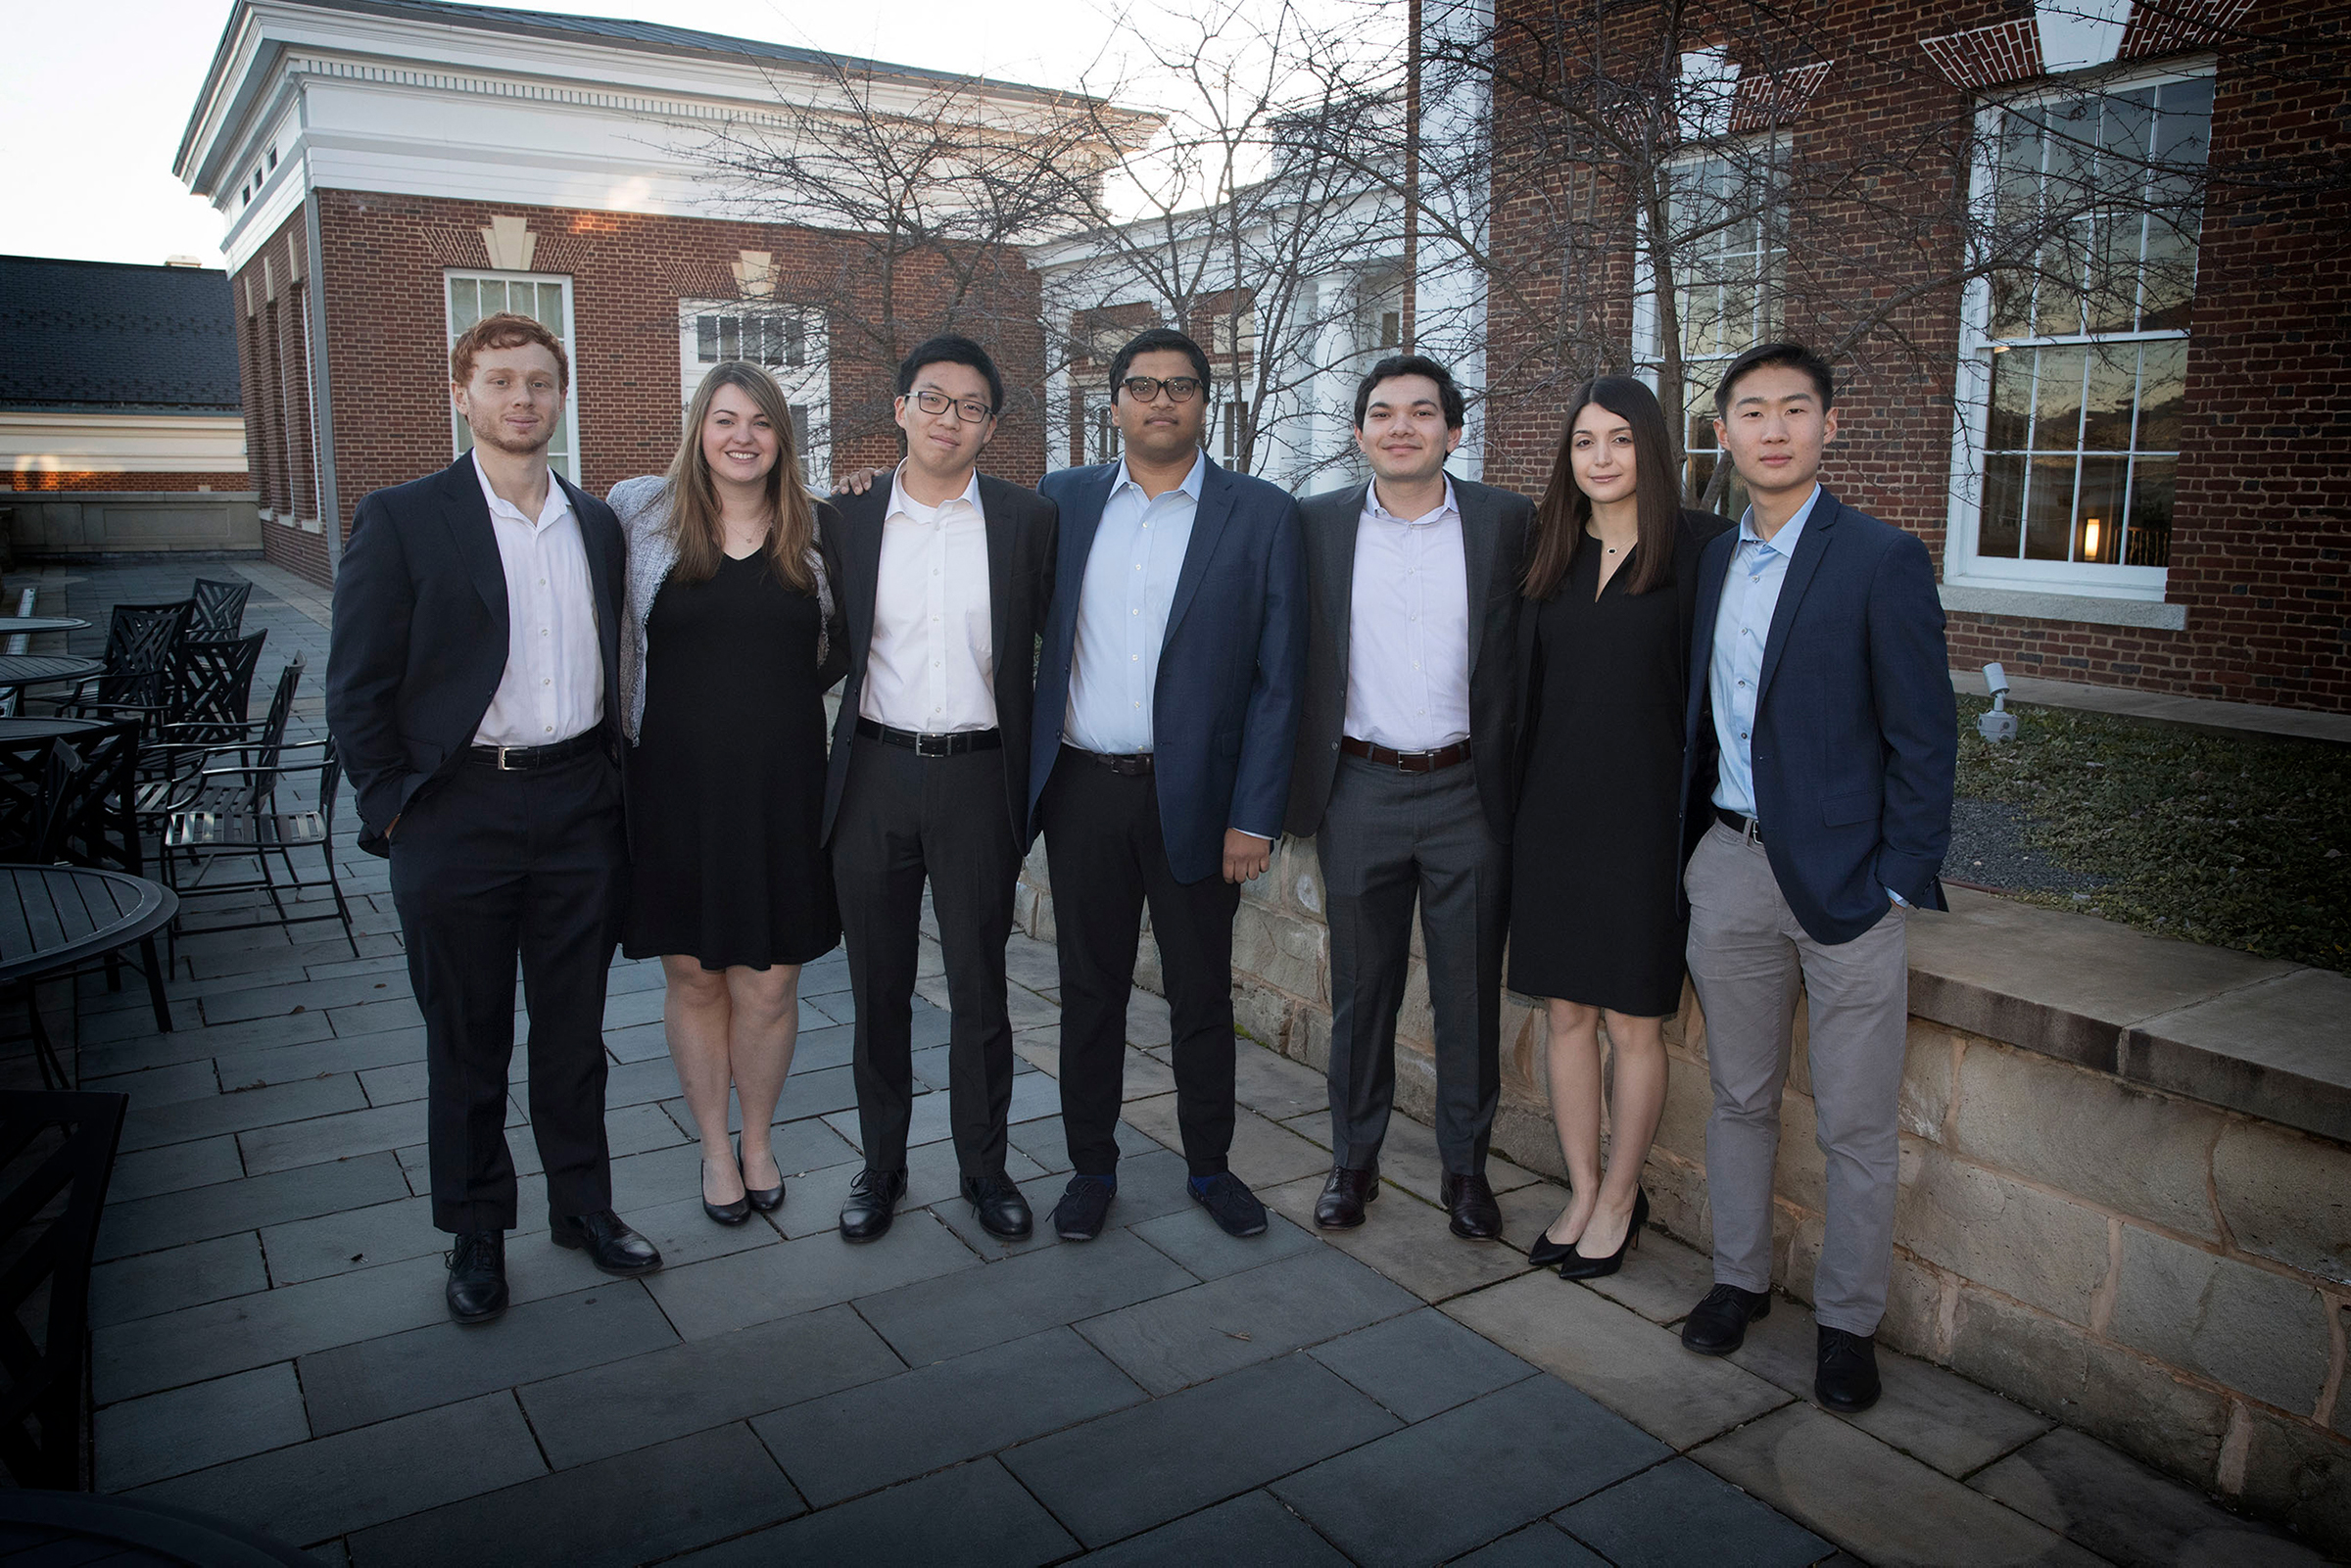 Student managers Josh Blutfield, Joanna Shaw, Nathan Lin, Abhijith Chaganti, Christopher DeSouza, Marisa Lombardi and Richard Song. Not pictured: Donny Waymire, Aneesh Reddy, Ronald Diu. (Photo by Dan Addison, University Communications)